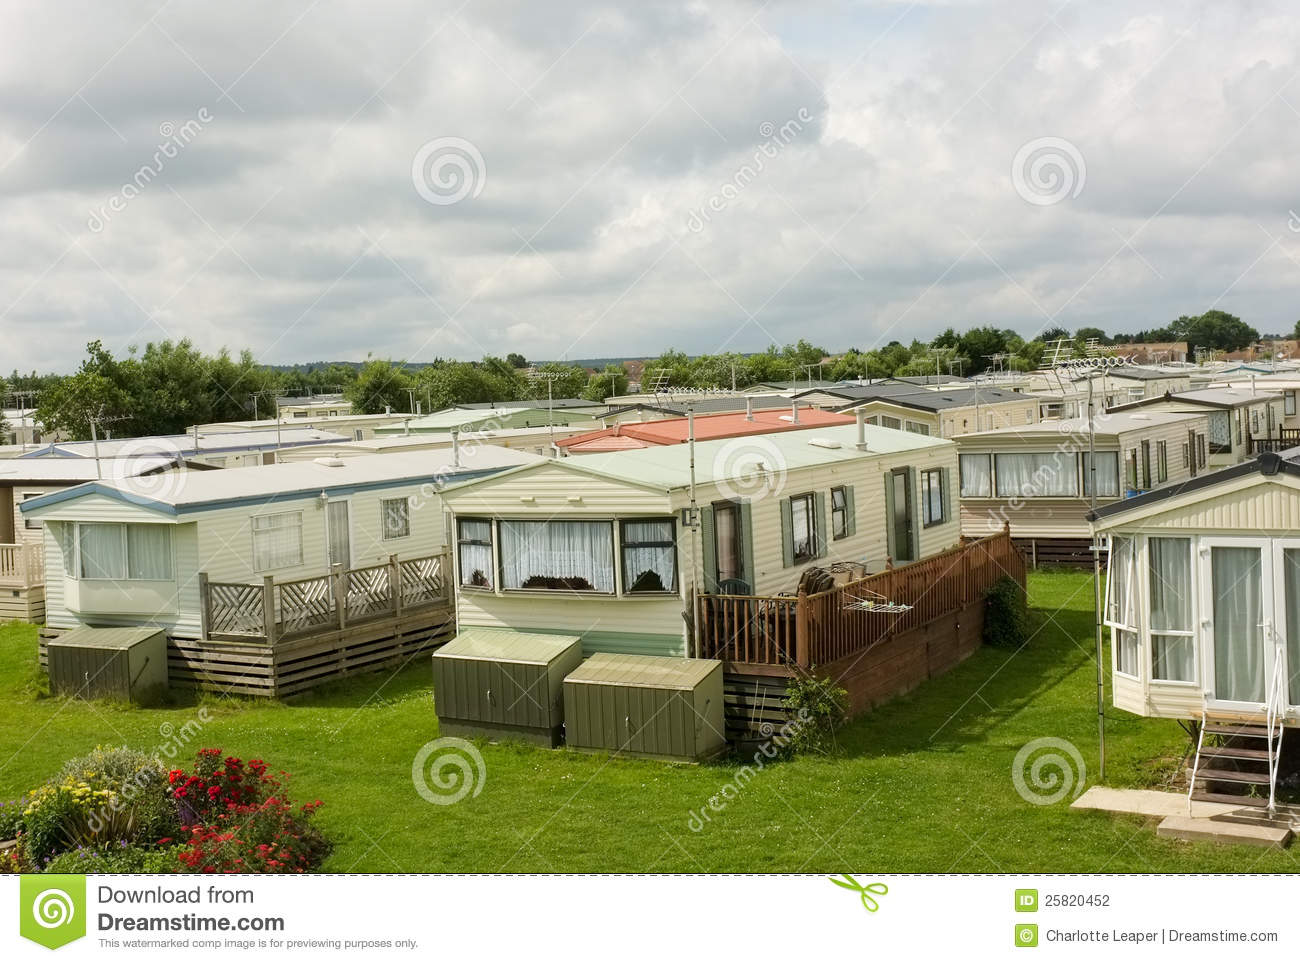 Original Labourers Were Forced To Live In Shabby Rundown Caravans, Or In Stables Next To